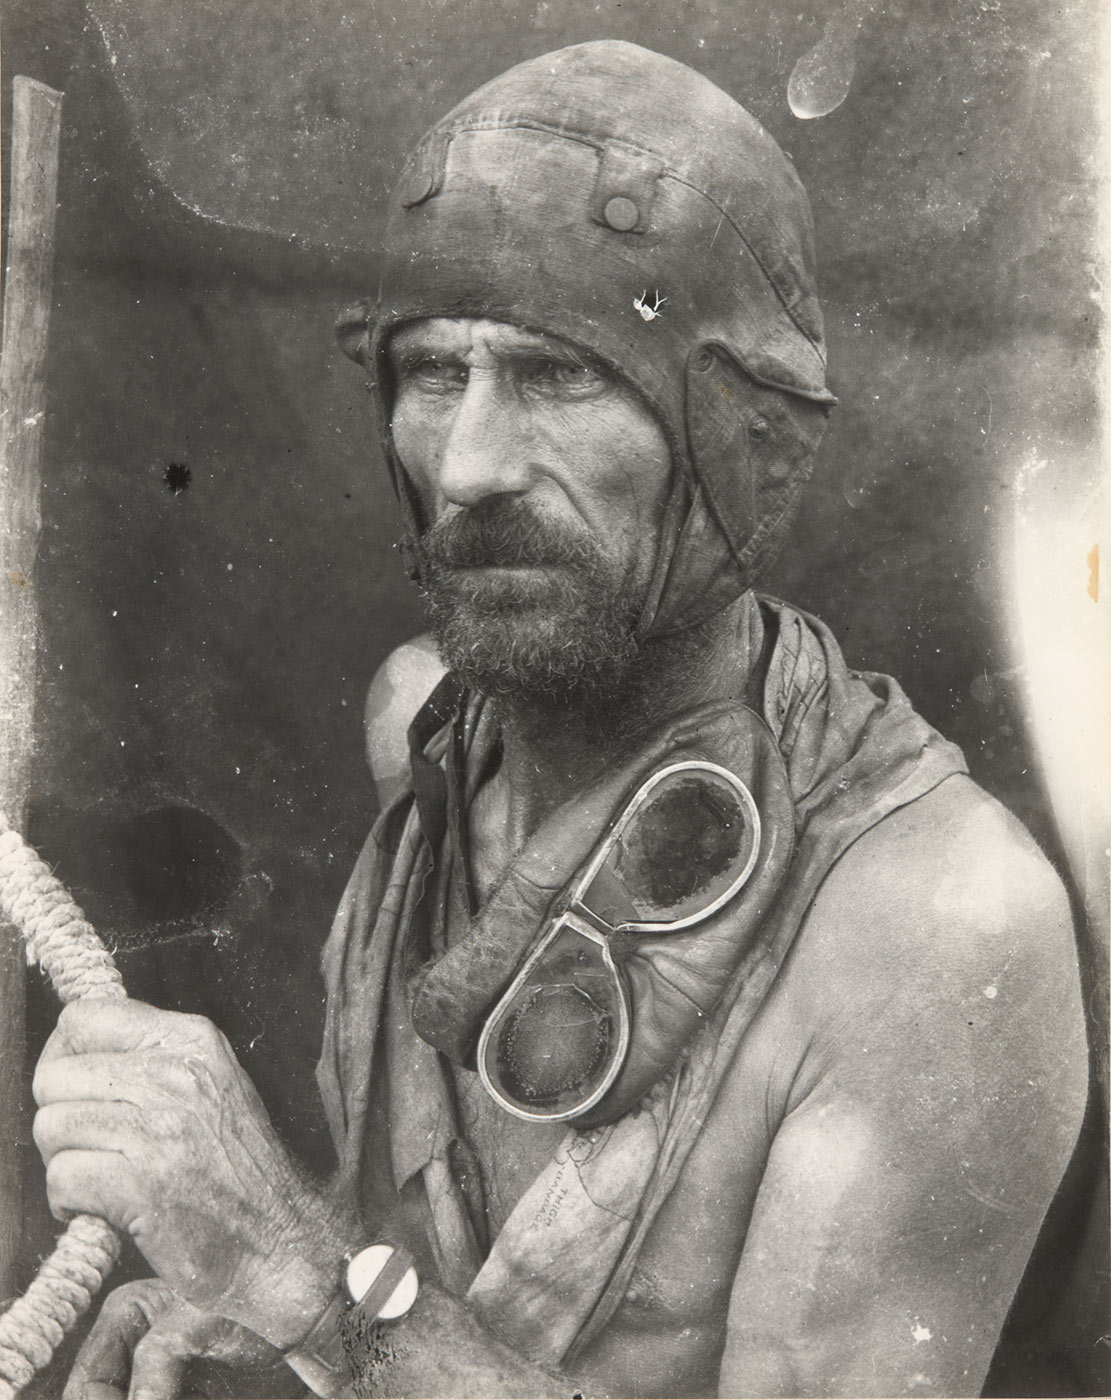 Black and white image showing a bearded and bare-chested man gazing to the left of frame. He wears a leather flying-style cap and has goggles draped around his neck. His right arm clutches a rope. - click to view larger image